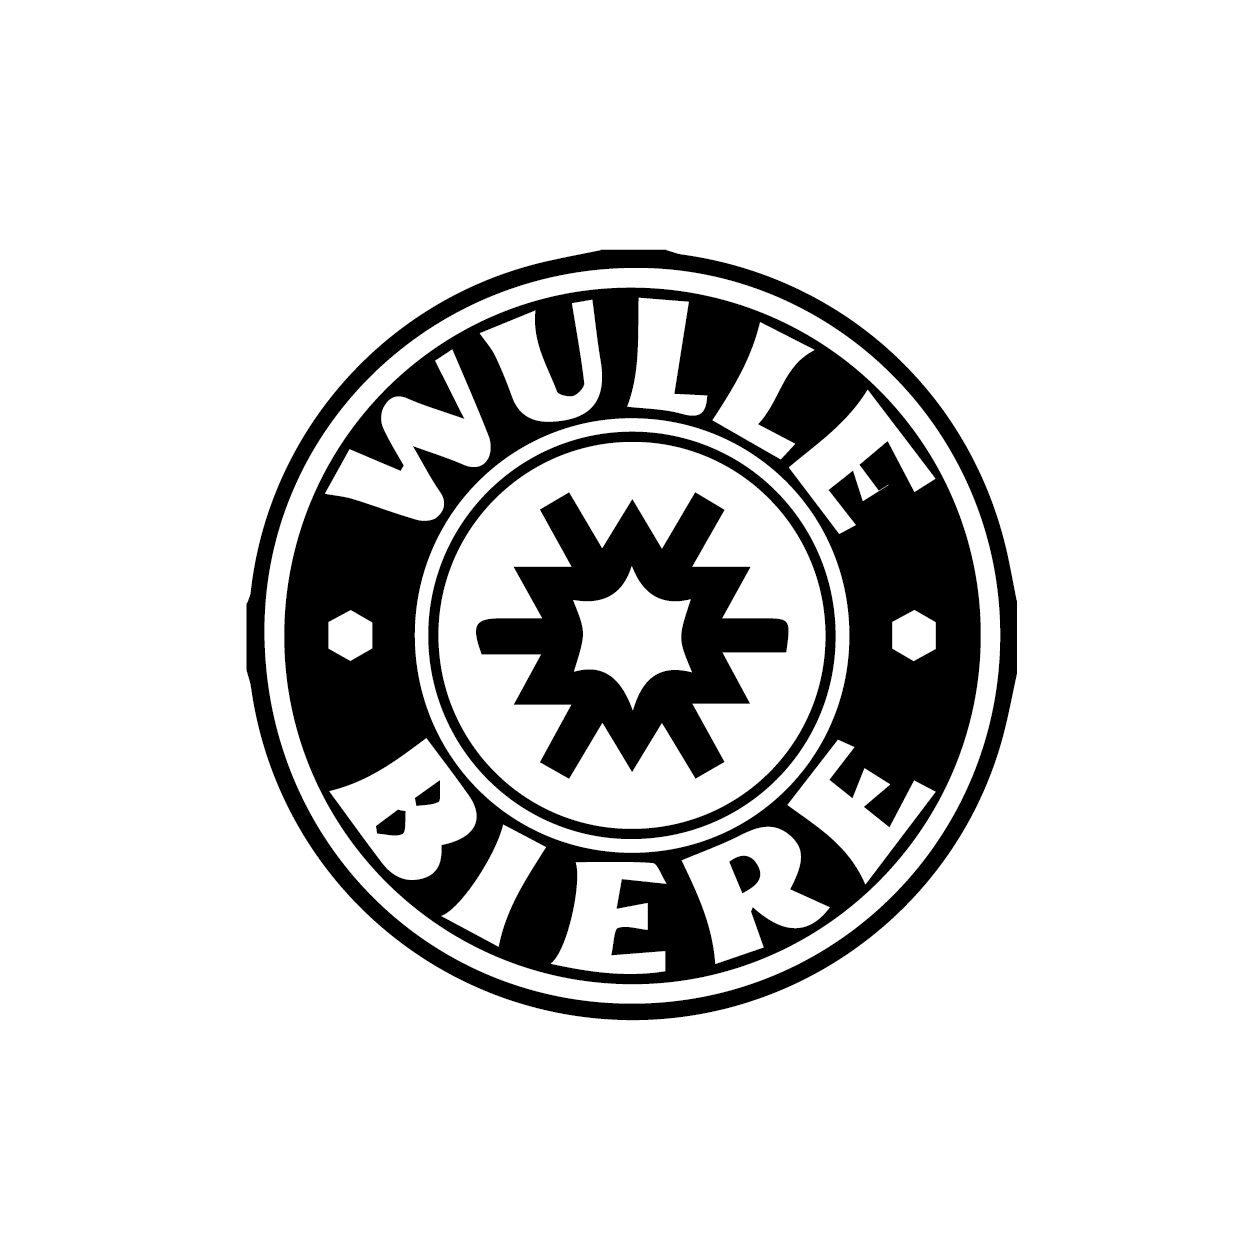 wulle-01.png